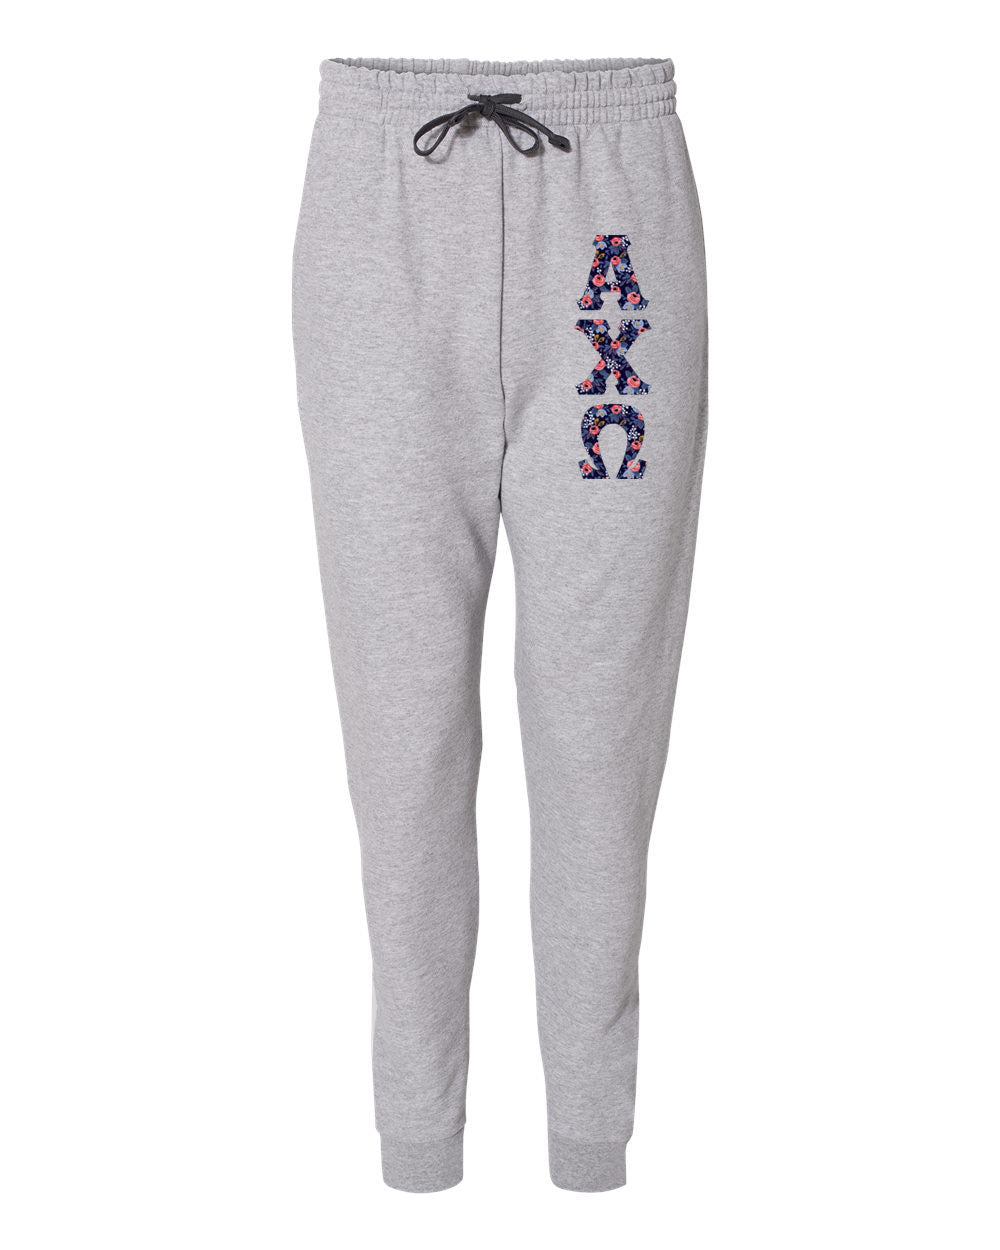 Go Greek Chic Alpha Omicron Pi Jogger Sweatpants